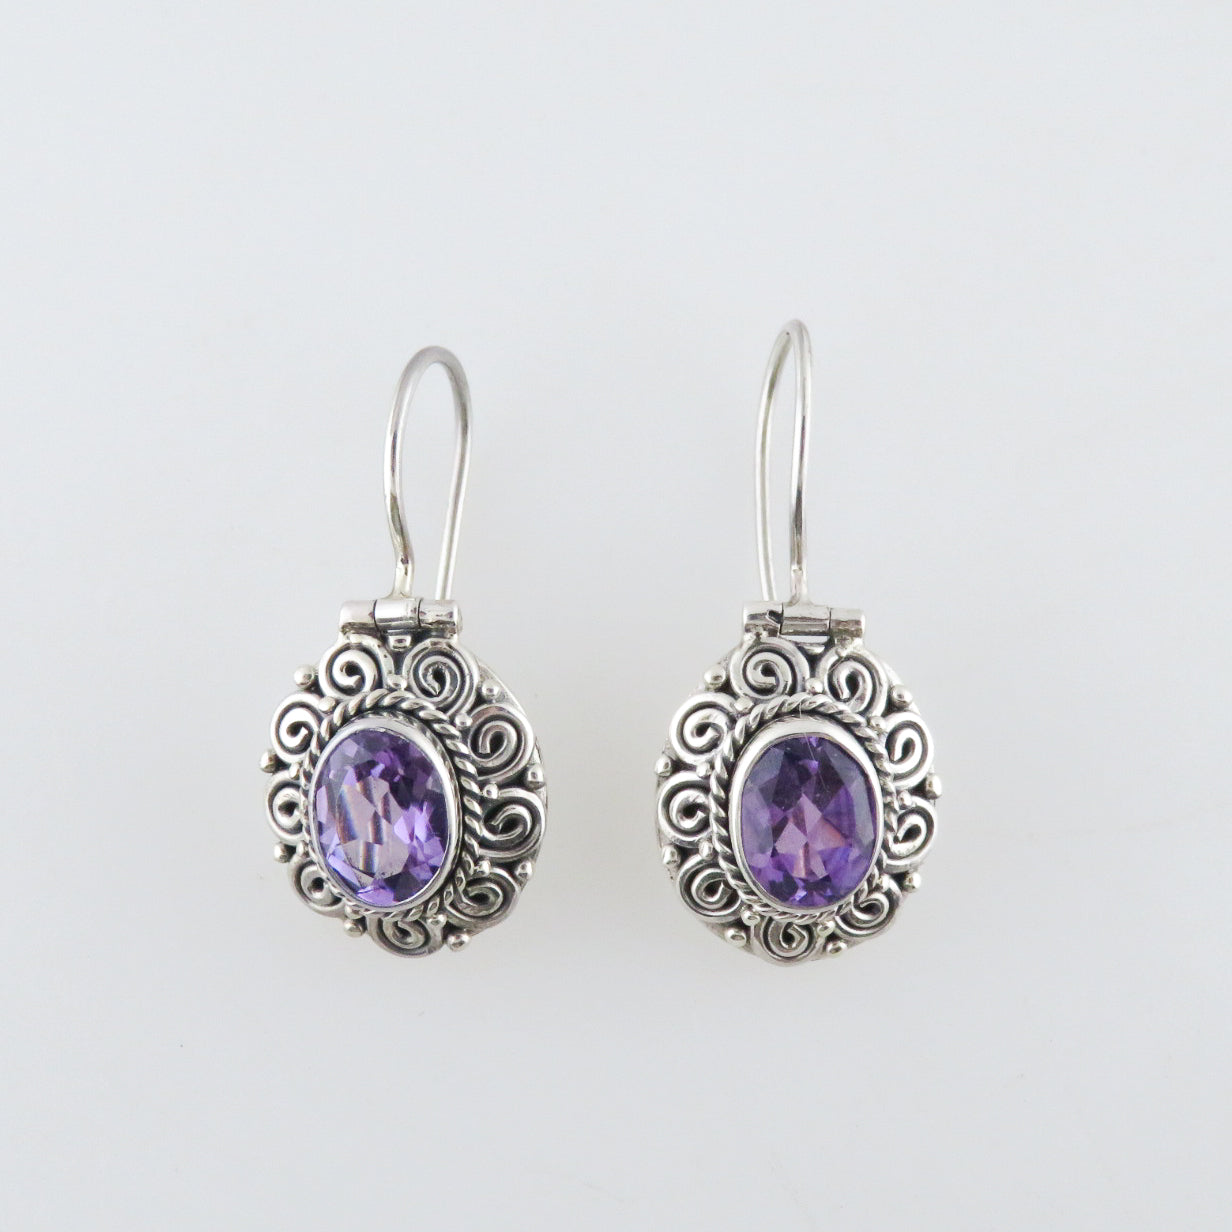 Amethyst Earrings with Sterling Silver